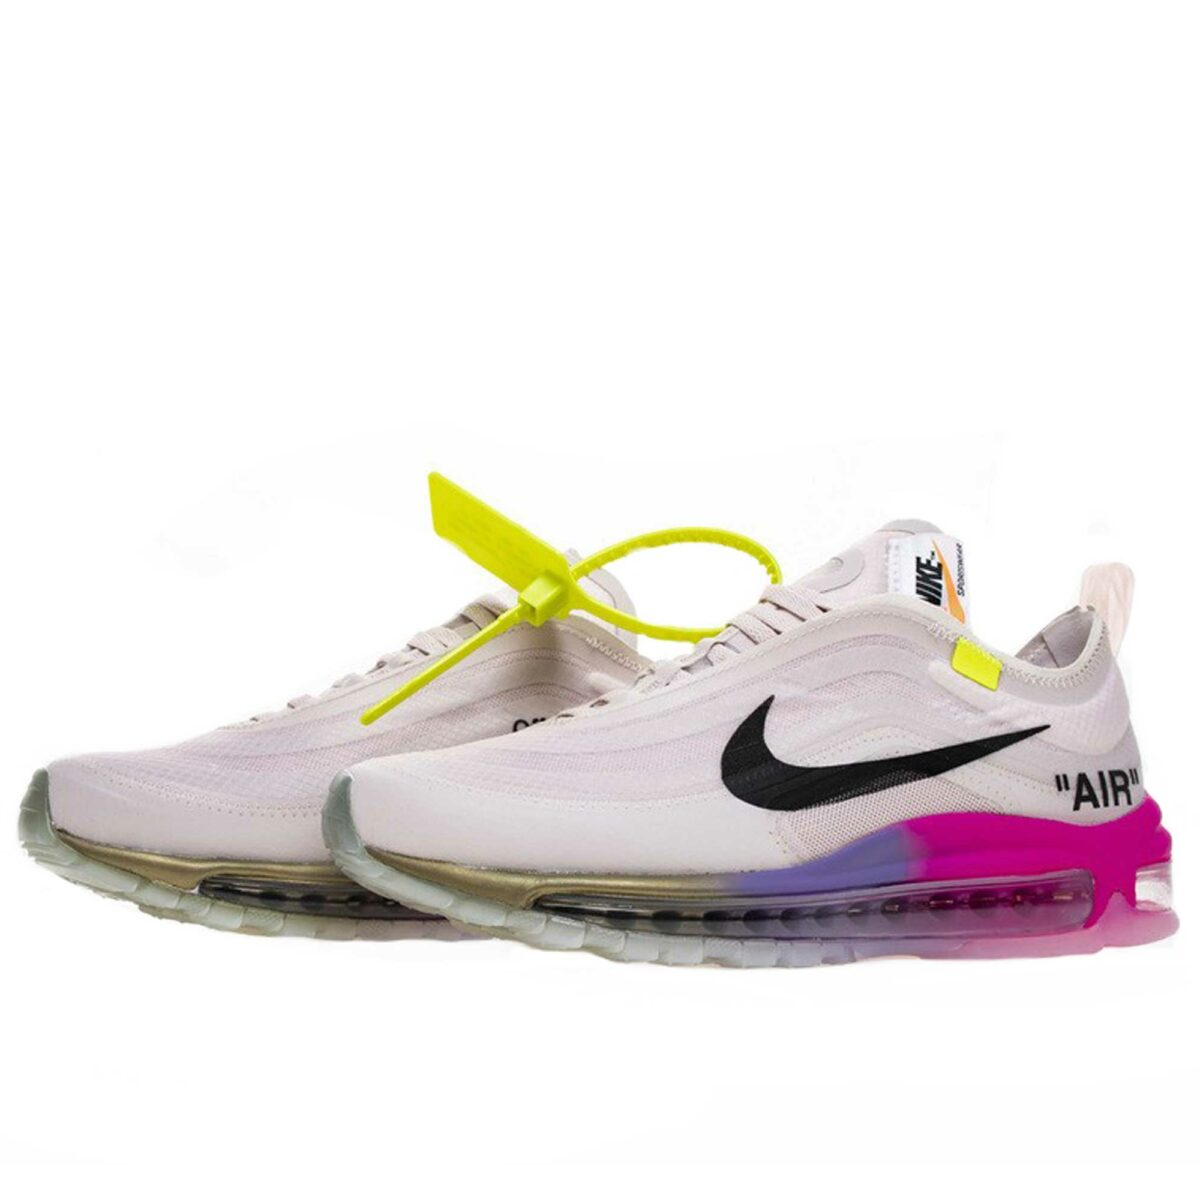 off-white x nike air max 97 rose barely AJ4585_600 купить